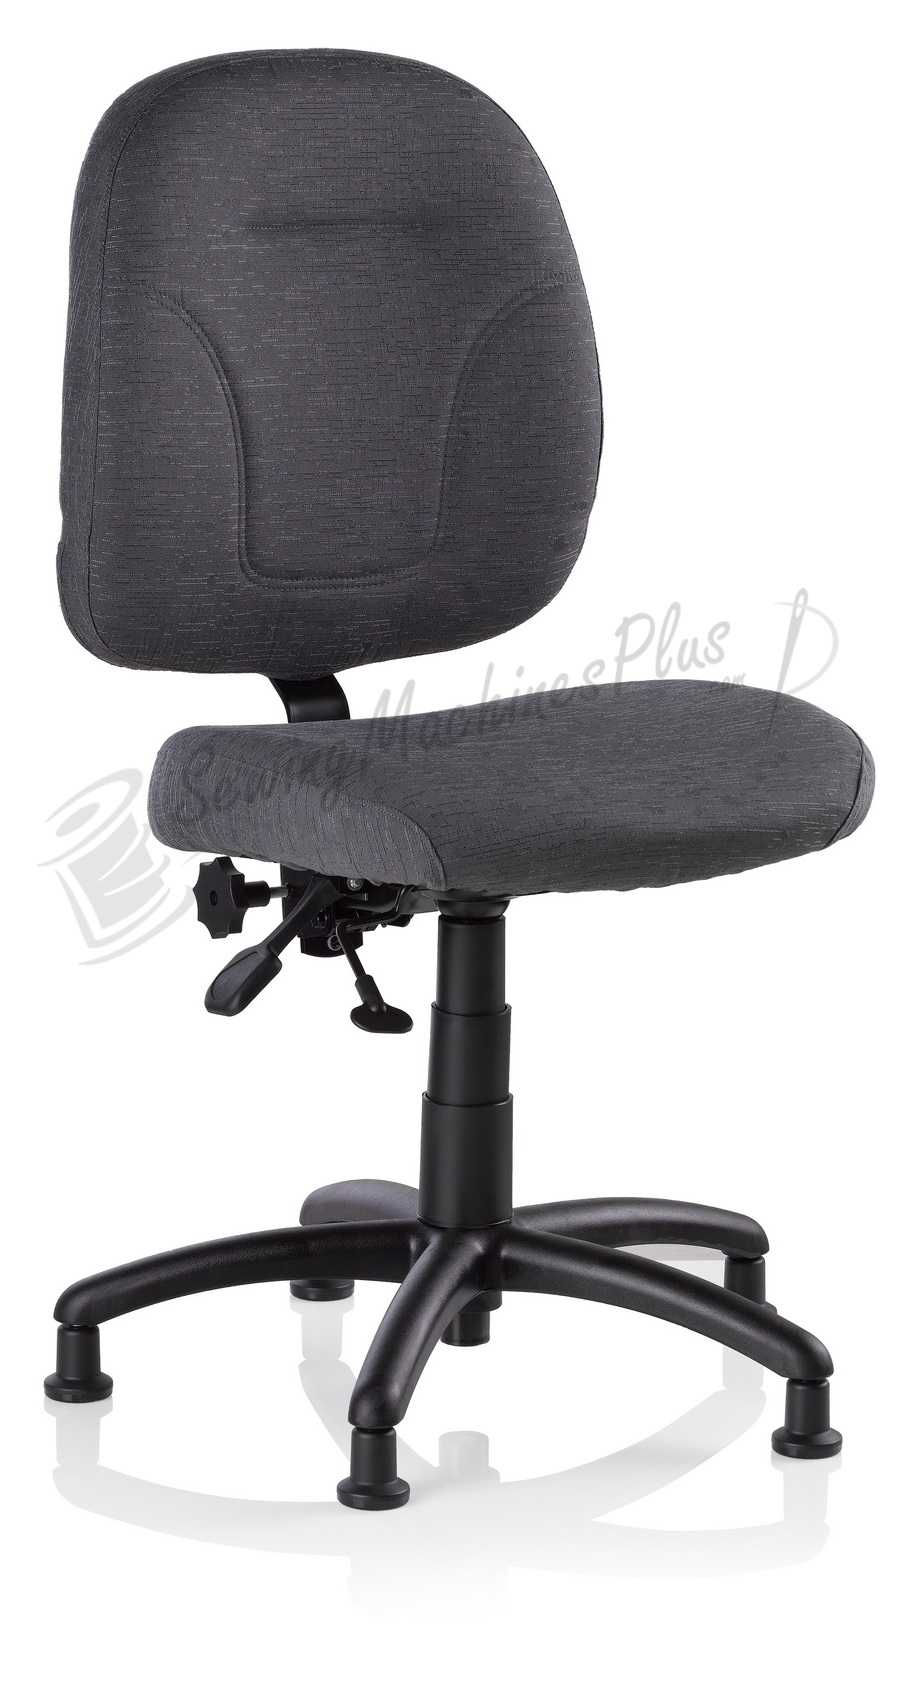 spool chair for sale floor chairs with arms sewergo score ergonomic sewing operator (200se)